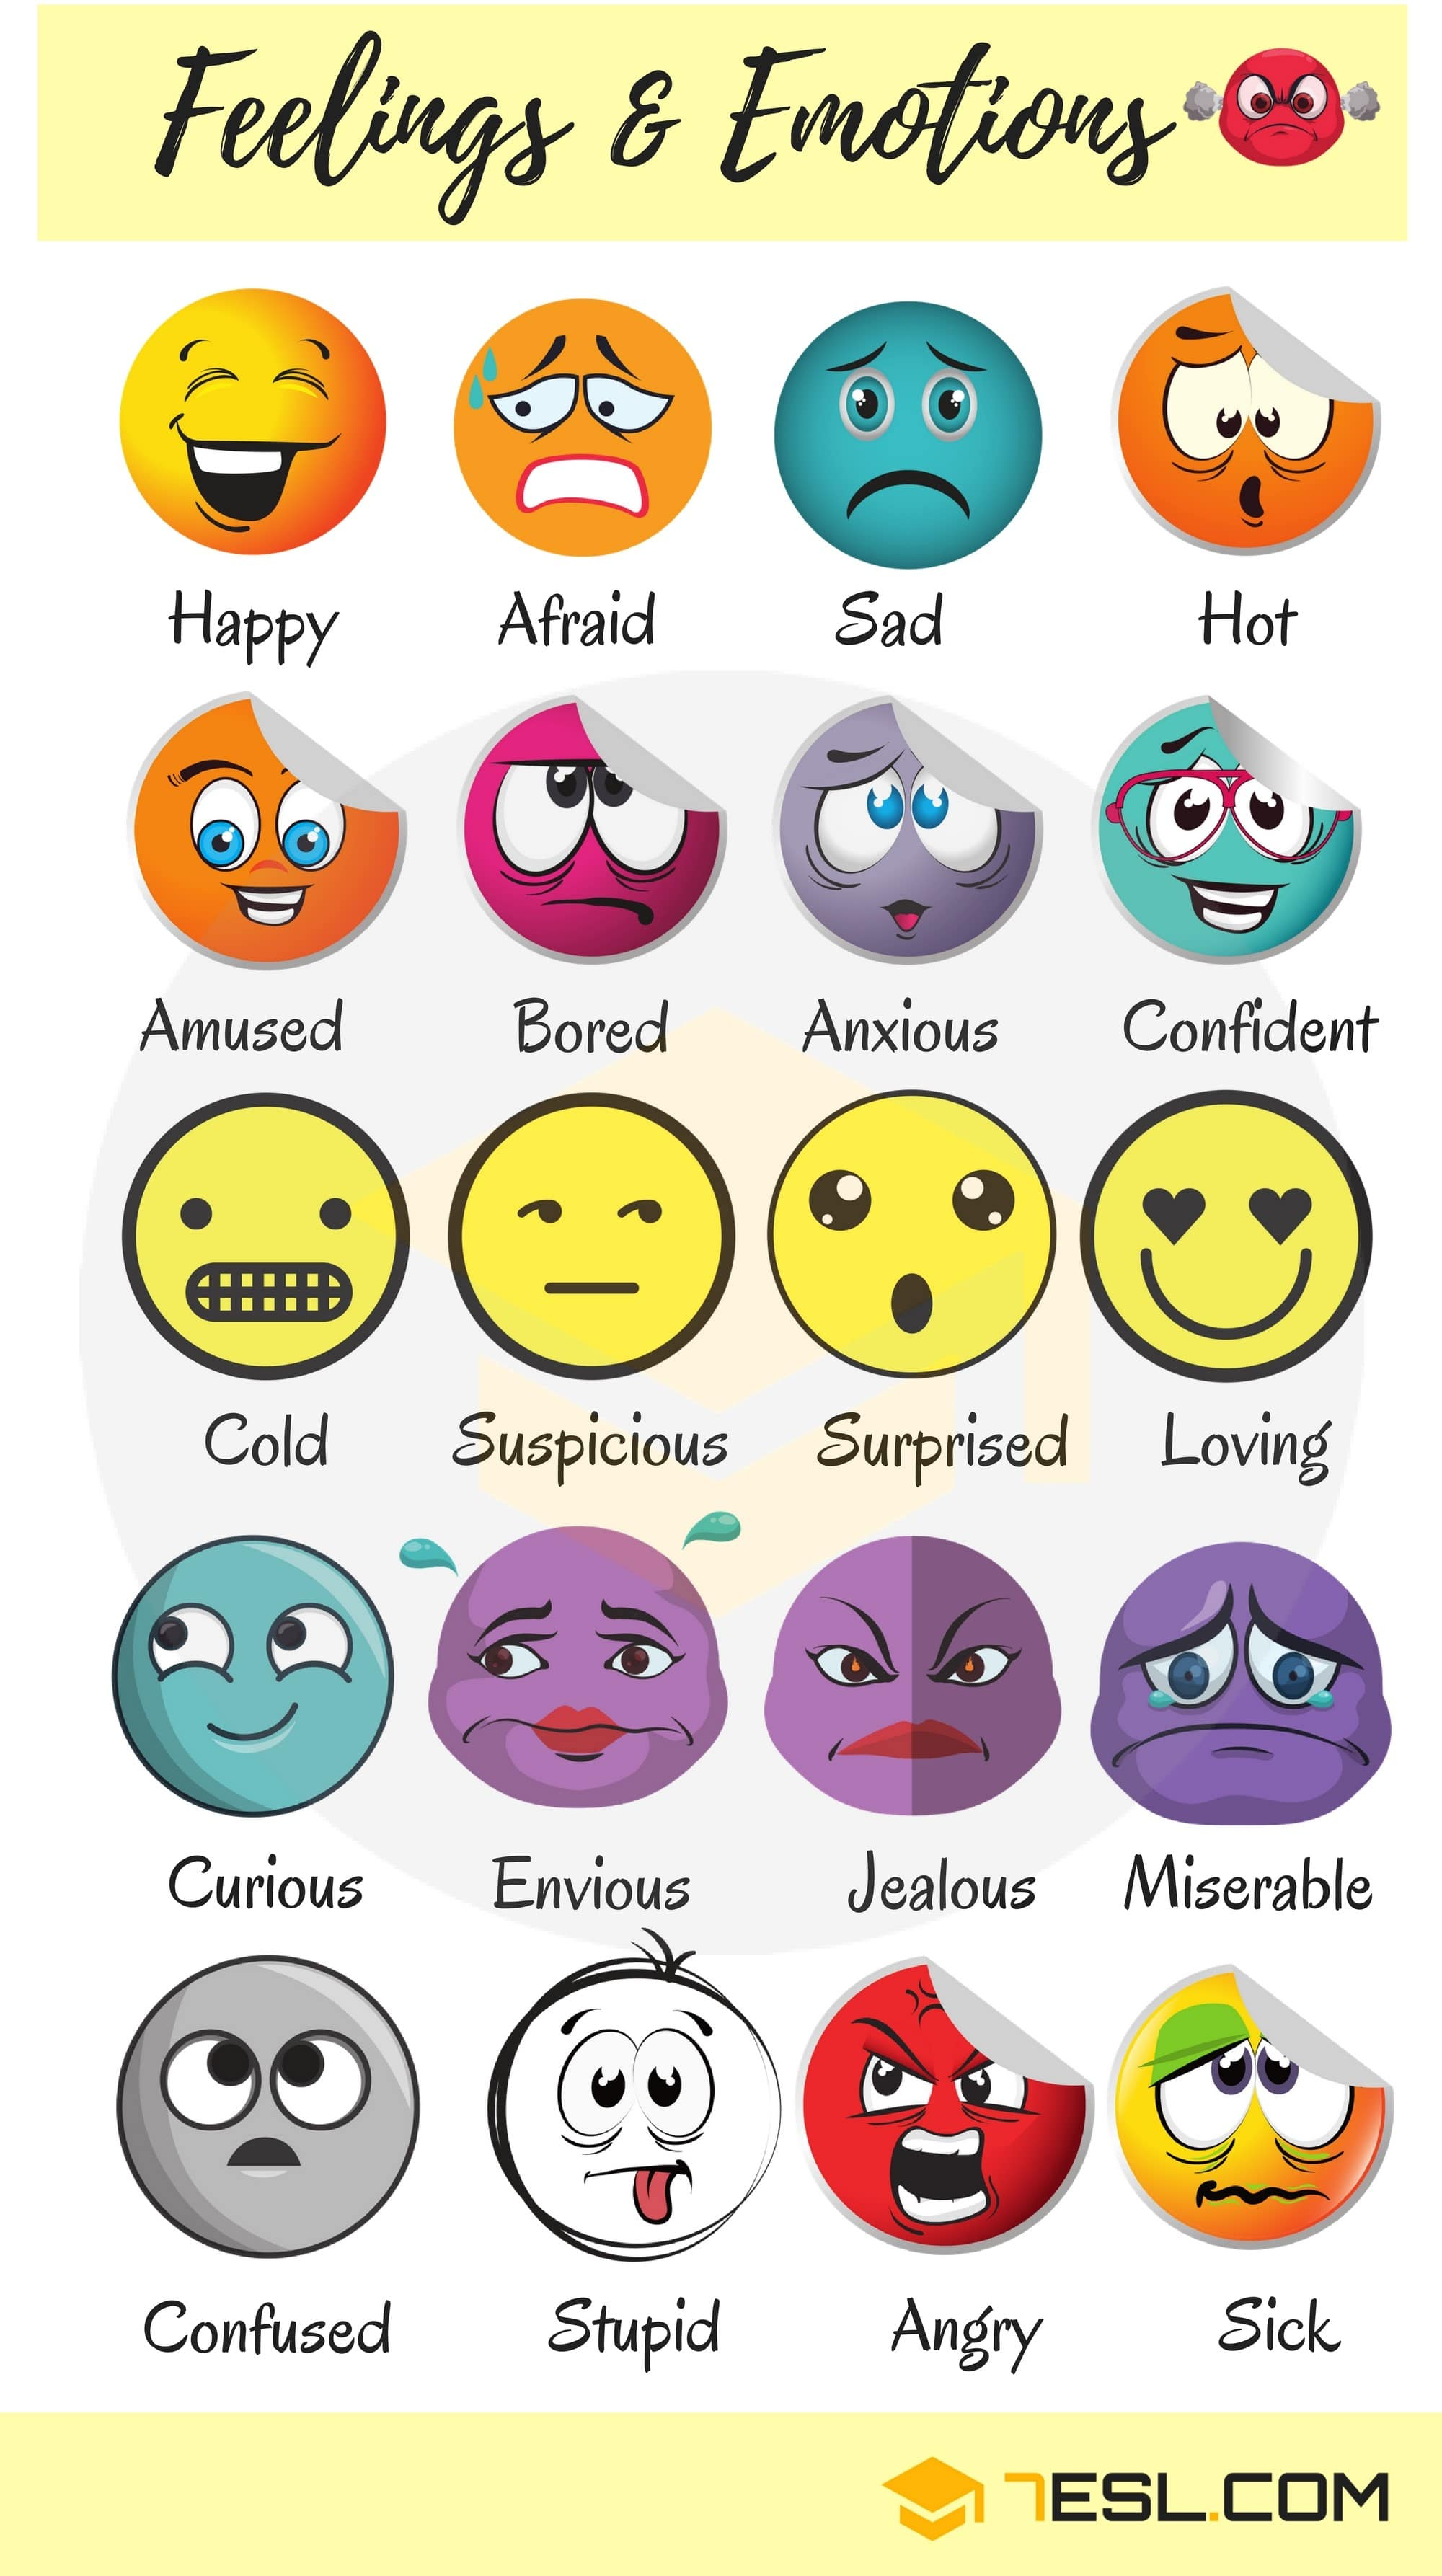 How to Describe Someone's Feelings and Emotions 2